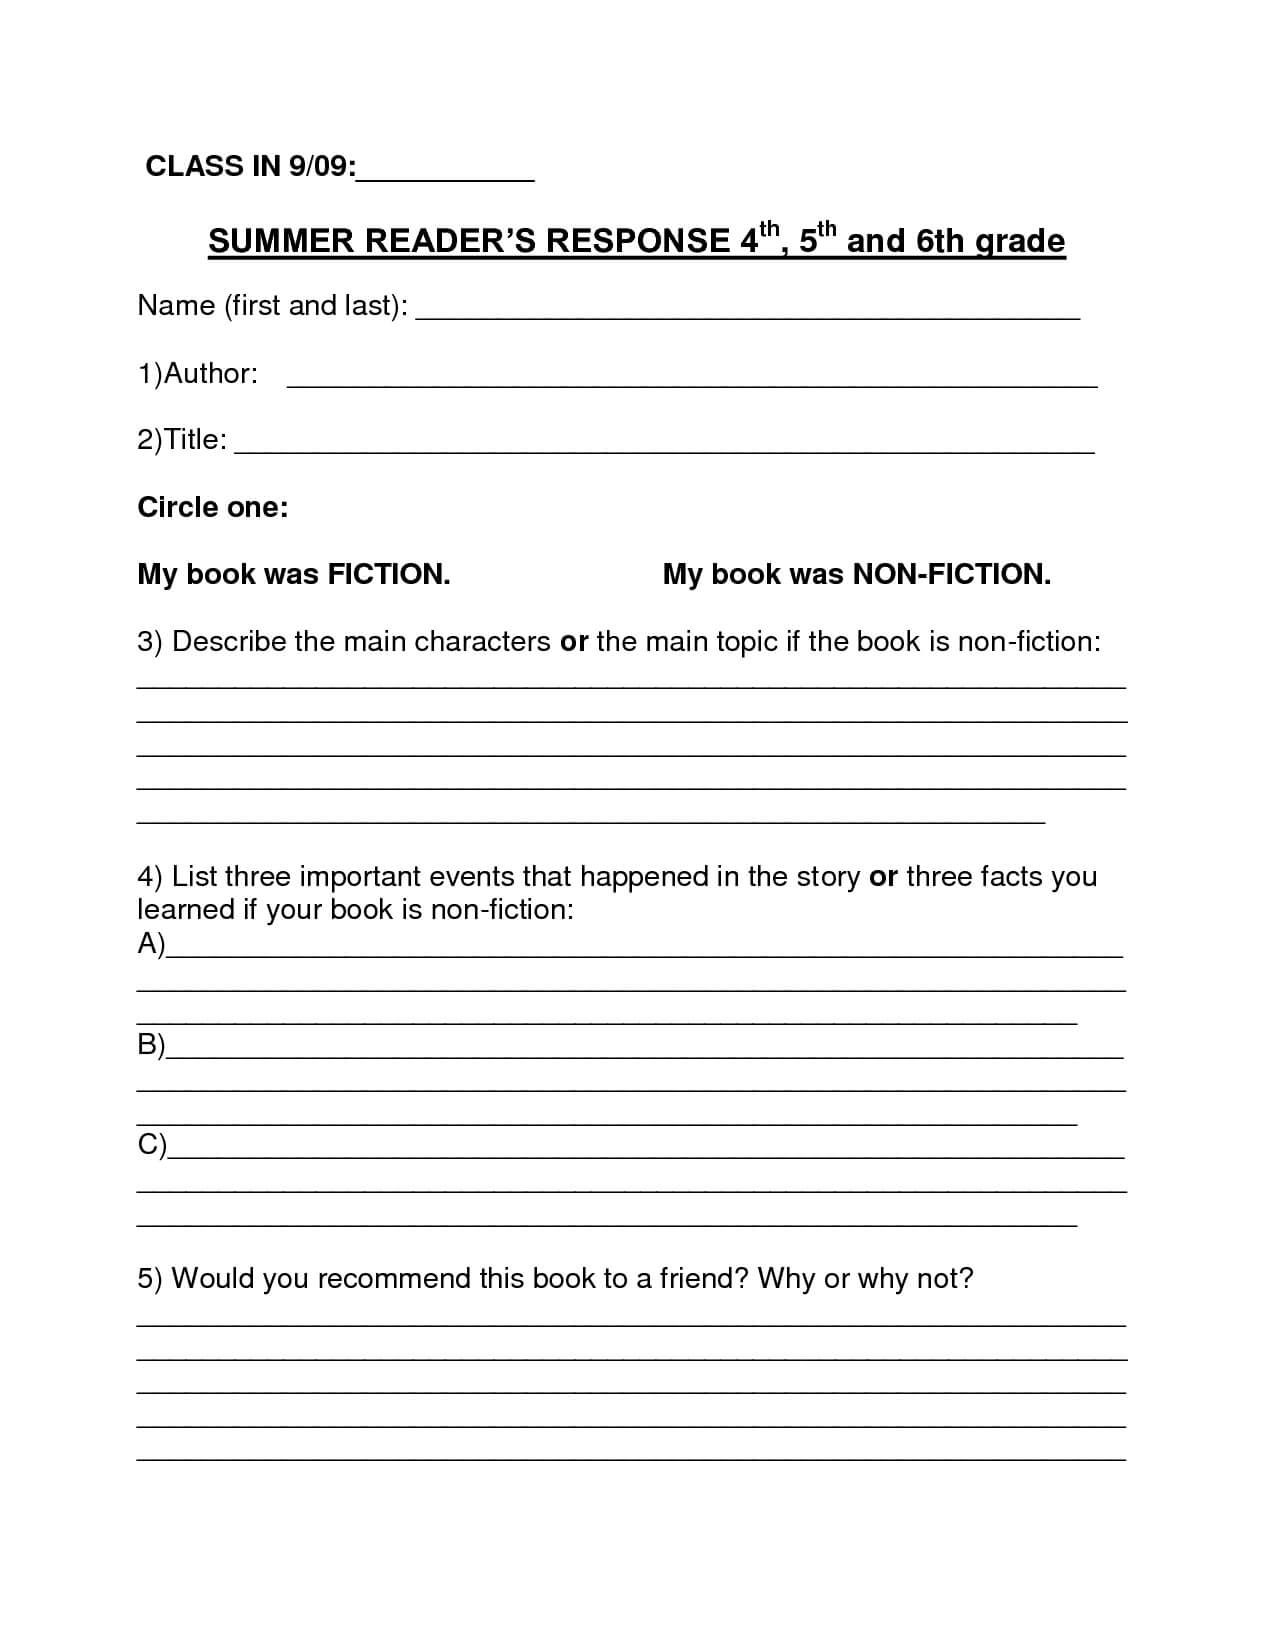 Book Report Template | Summer Book Report 4Th -6Th Grade intended for 4Th Grade Book Report Template